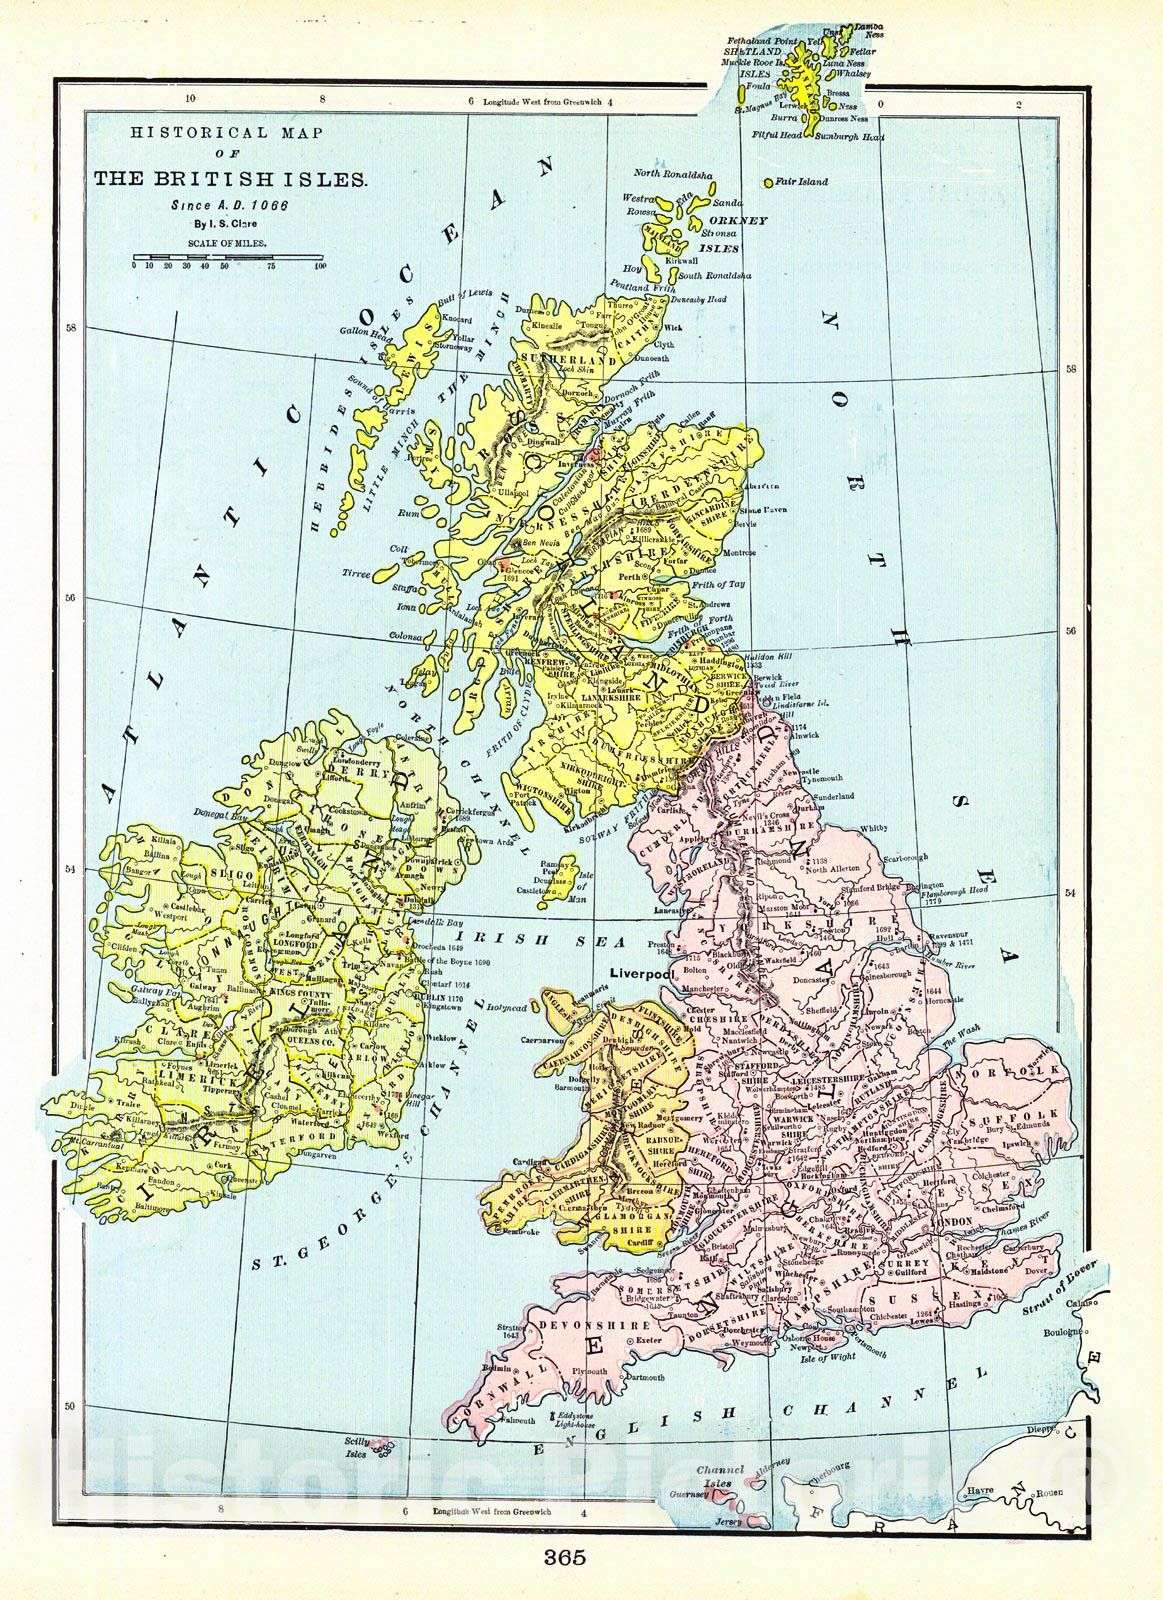 <p>Vintage Map | 1898 Historical Map of the British Isles since A.D. 1066 | Cram, George F.</p>